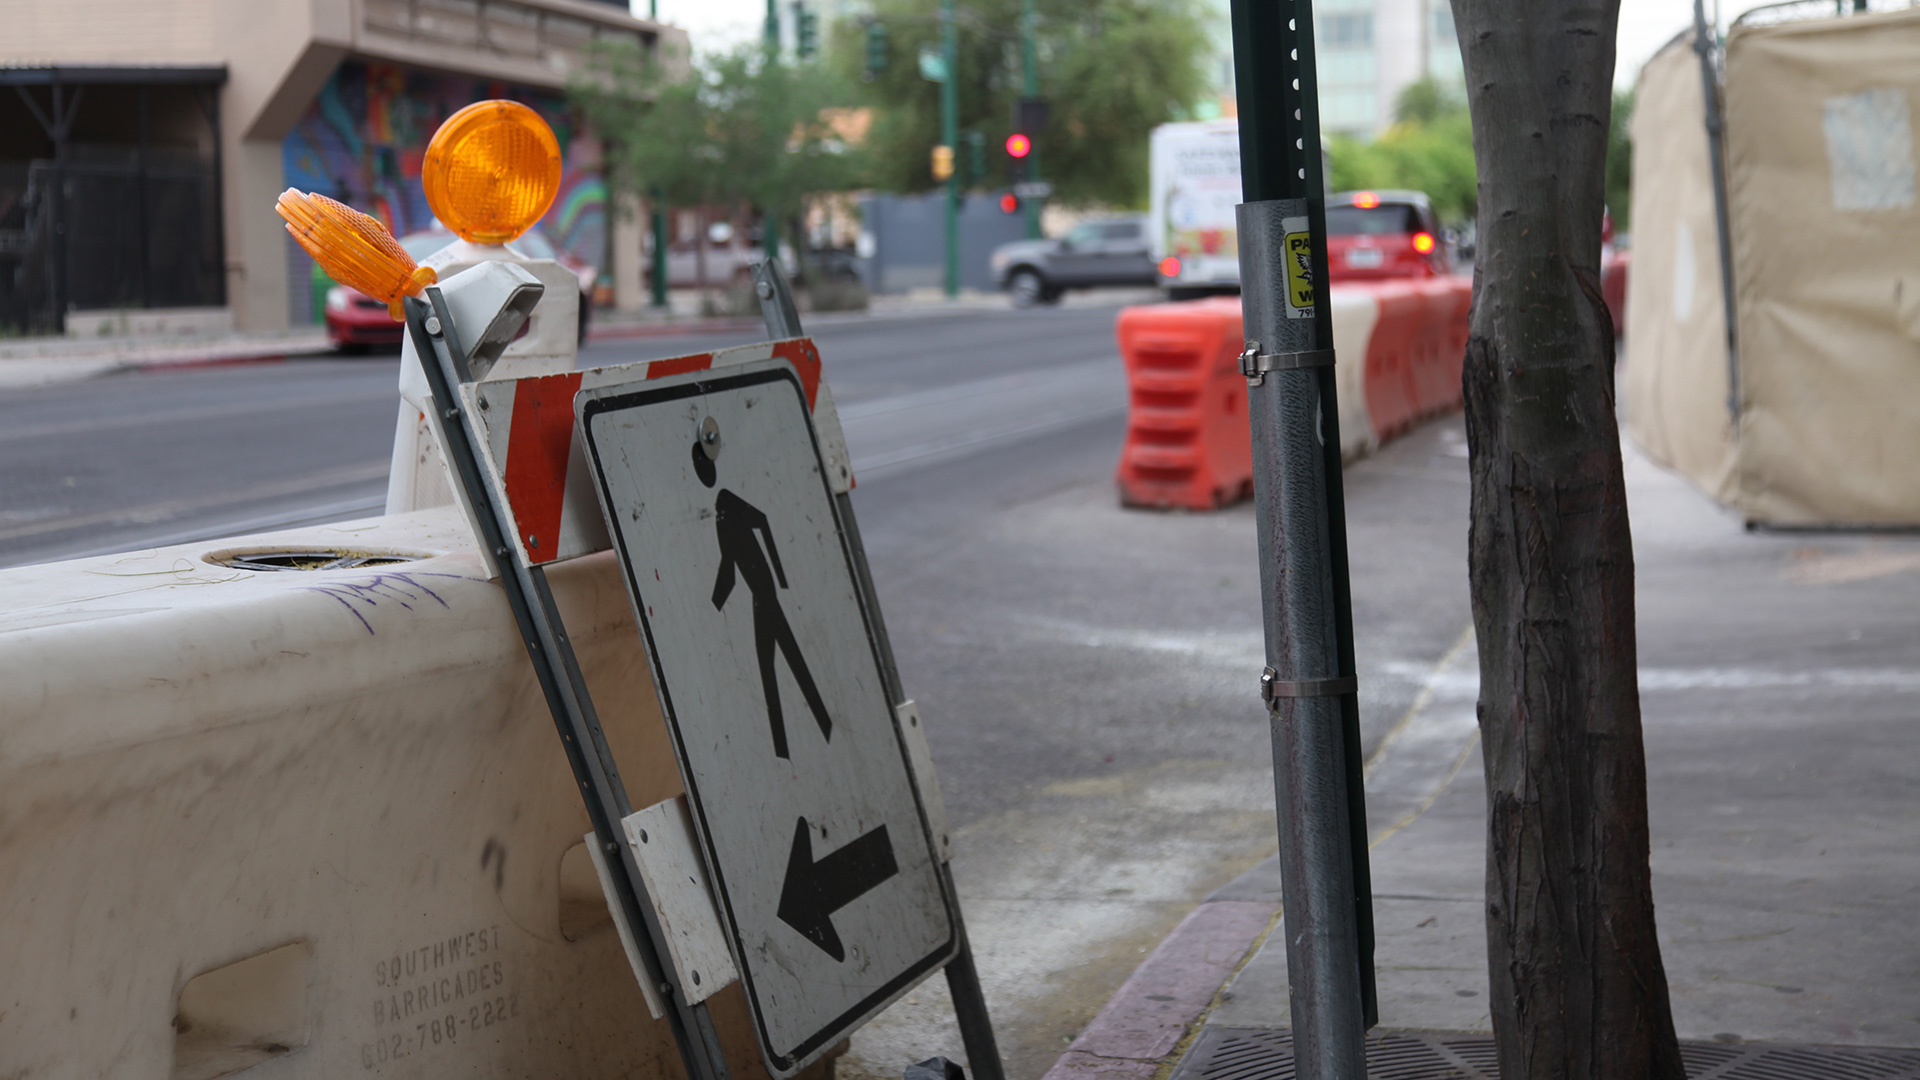 A sign directing pedestrians on a street in downtown Tucson.